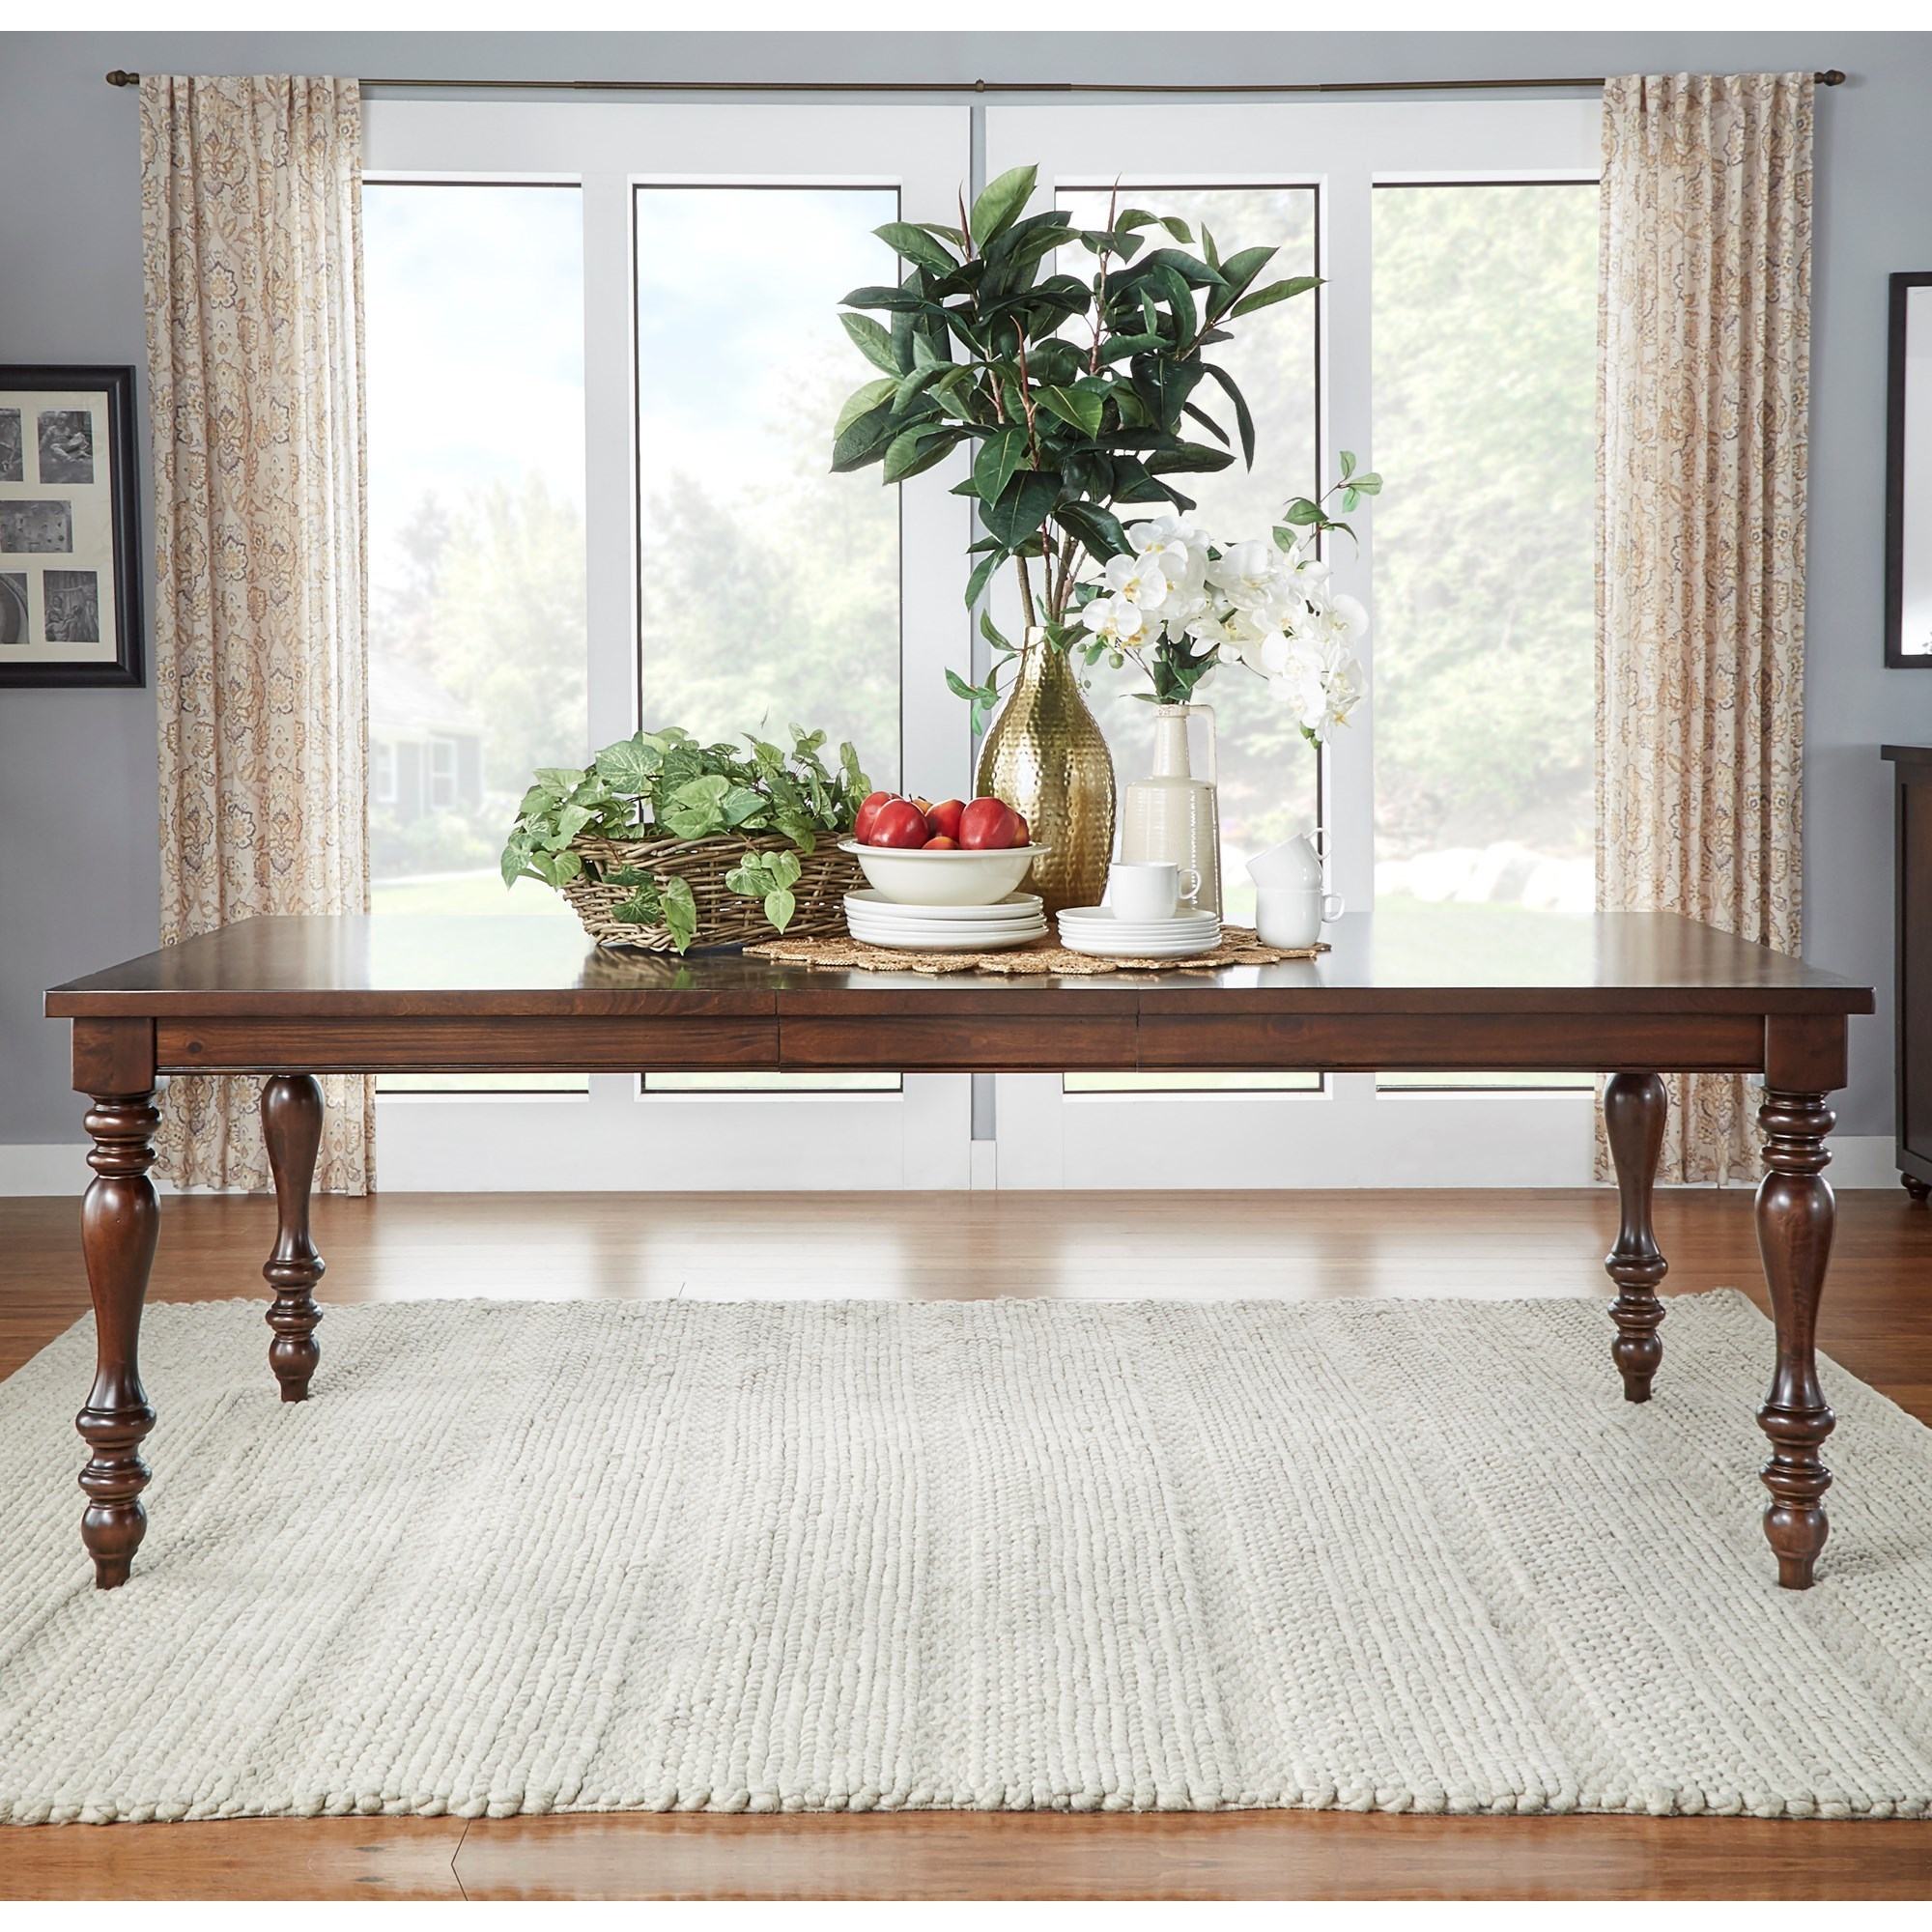 Homelegance Benwick Traditional Dining Table - Item Number: 5425-90